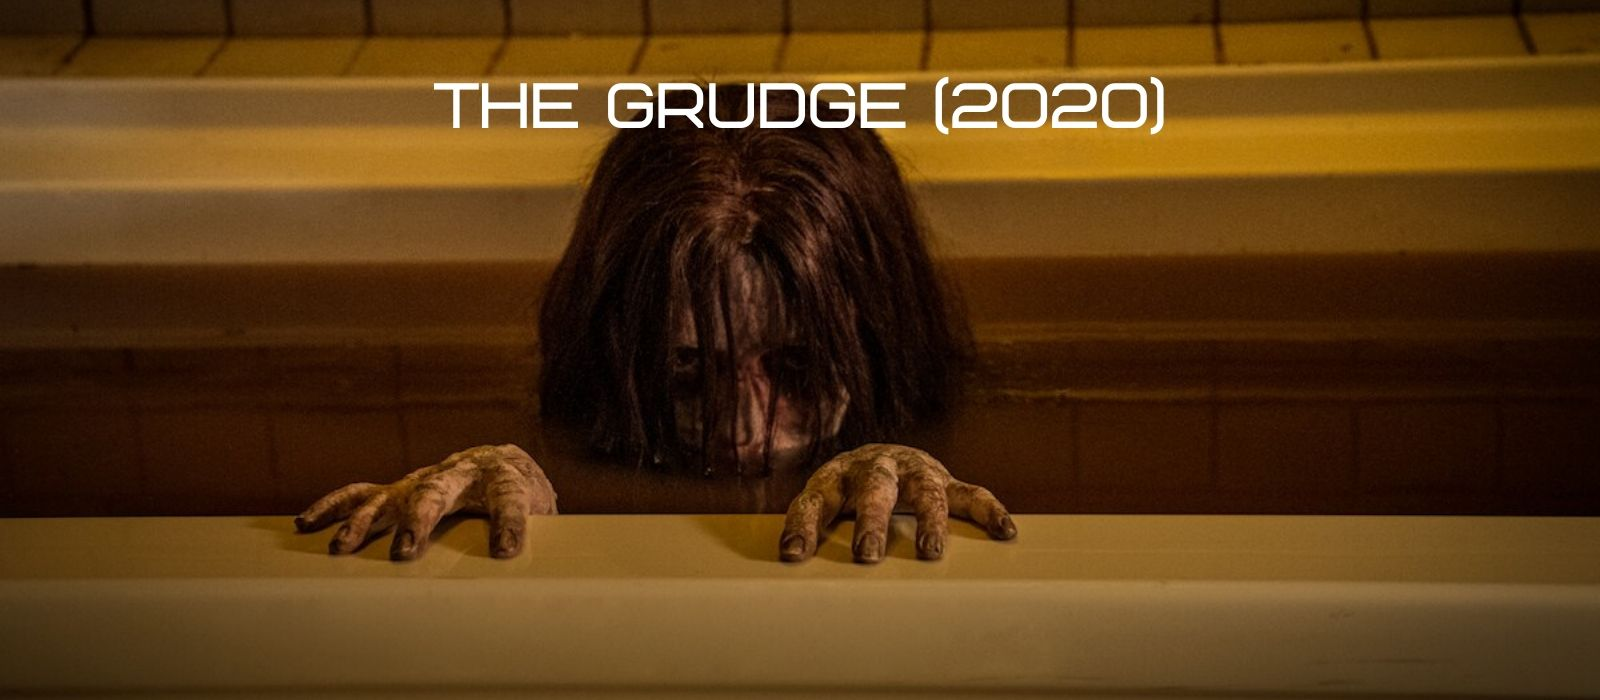 the grudge 2020 review cultural hater